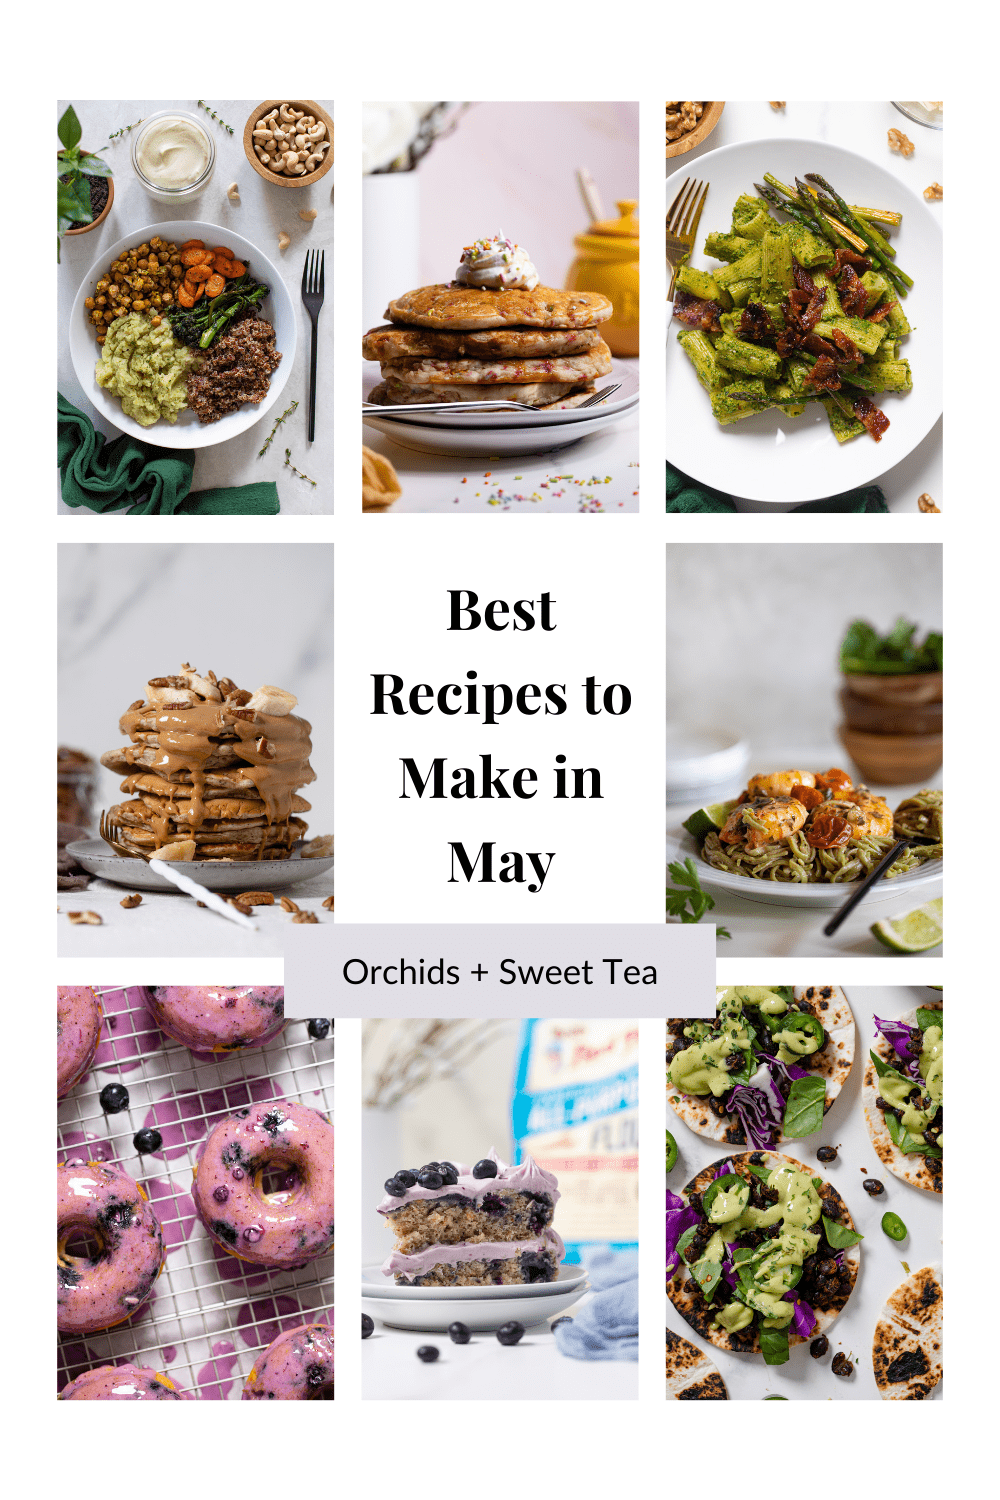 Best Recipes to Make in May